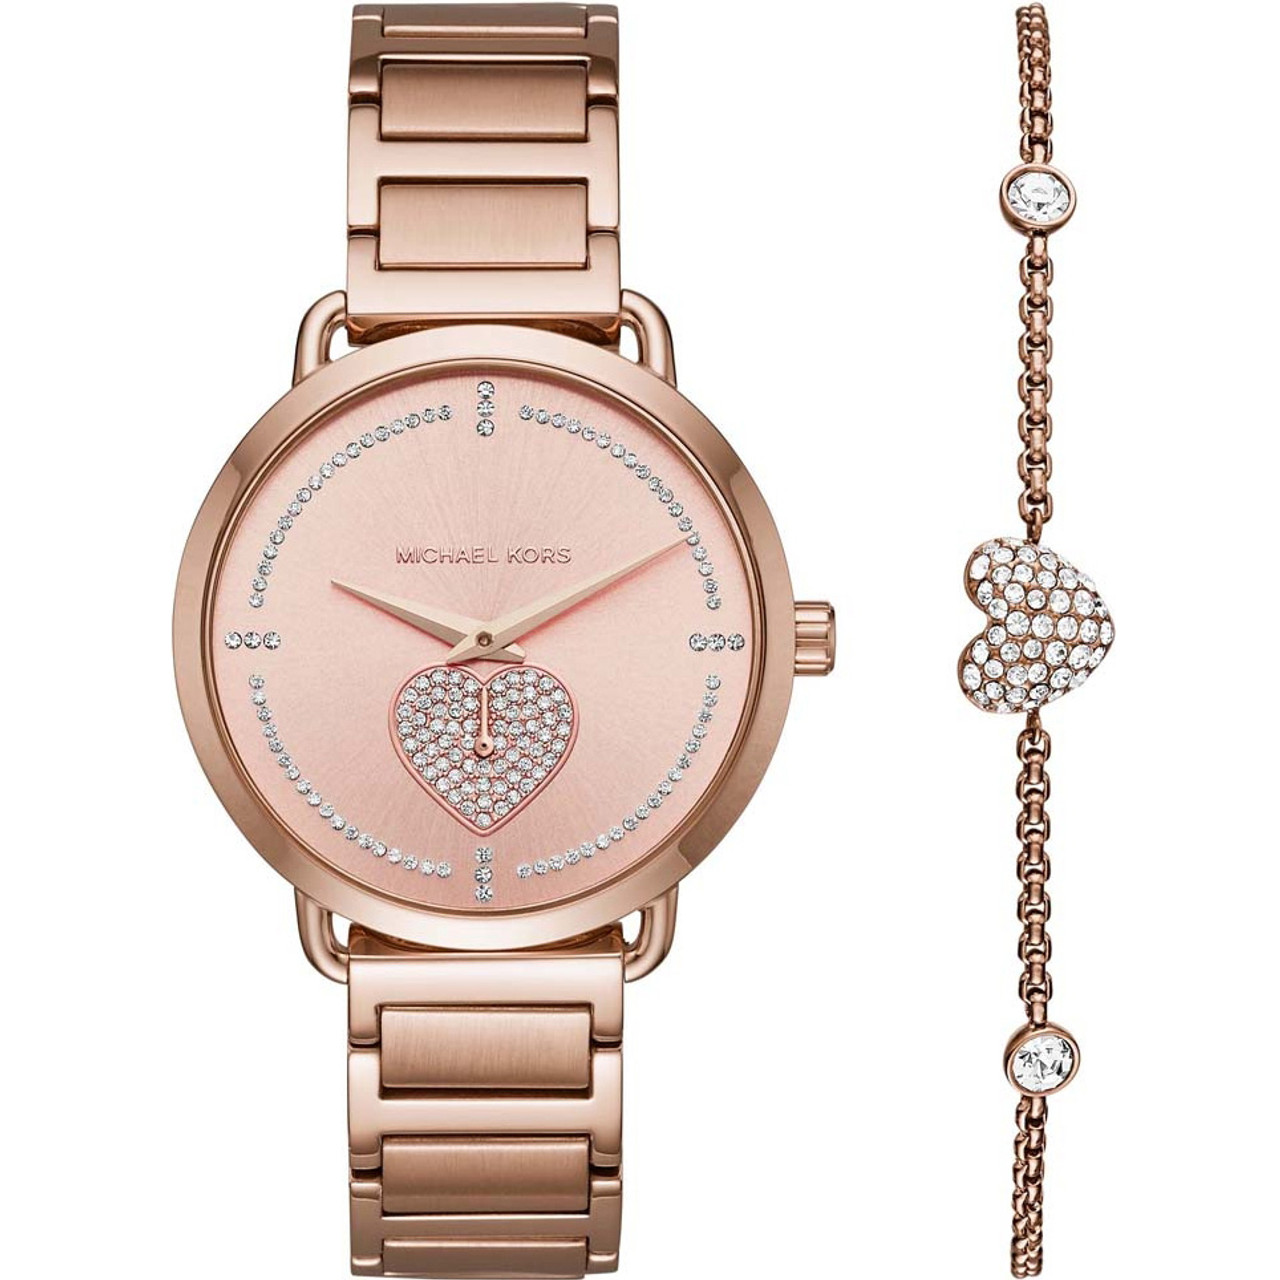 Michael Kors Portia Ladies Heart Crystals Rose Gold Watch And Bracelet Gift Set MK3827